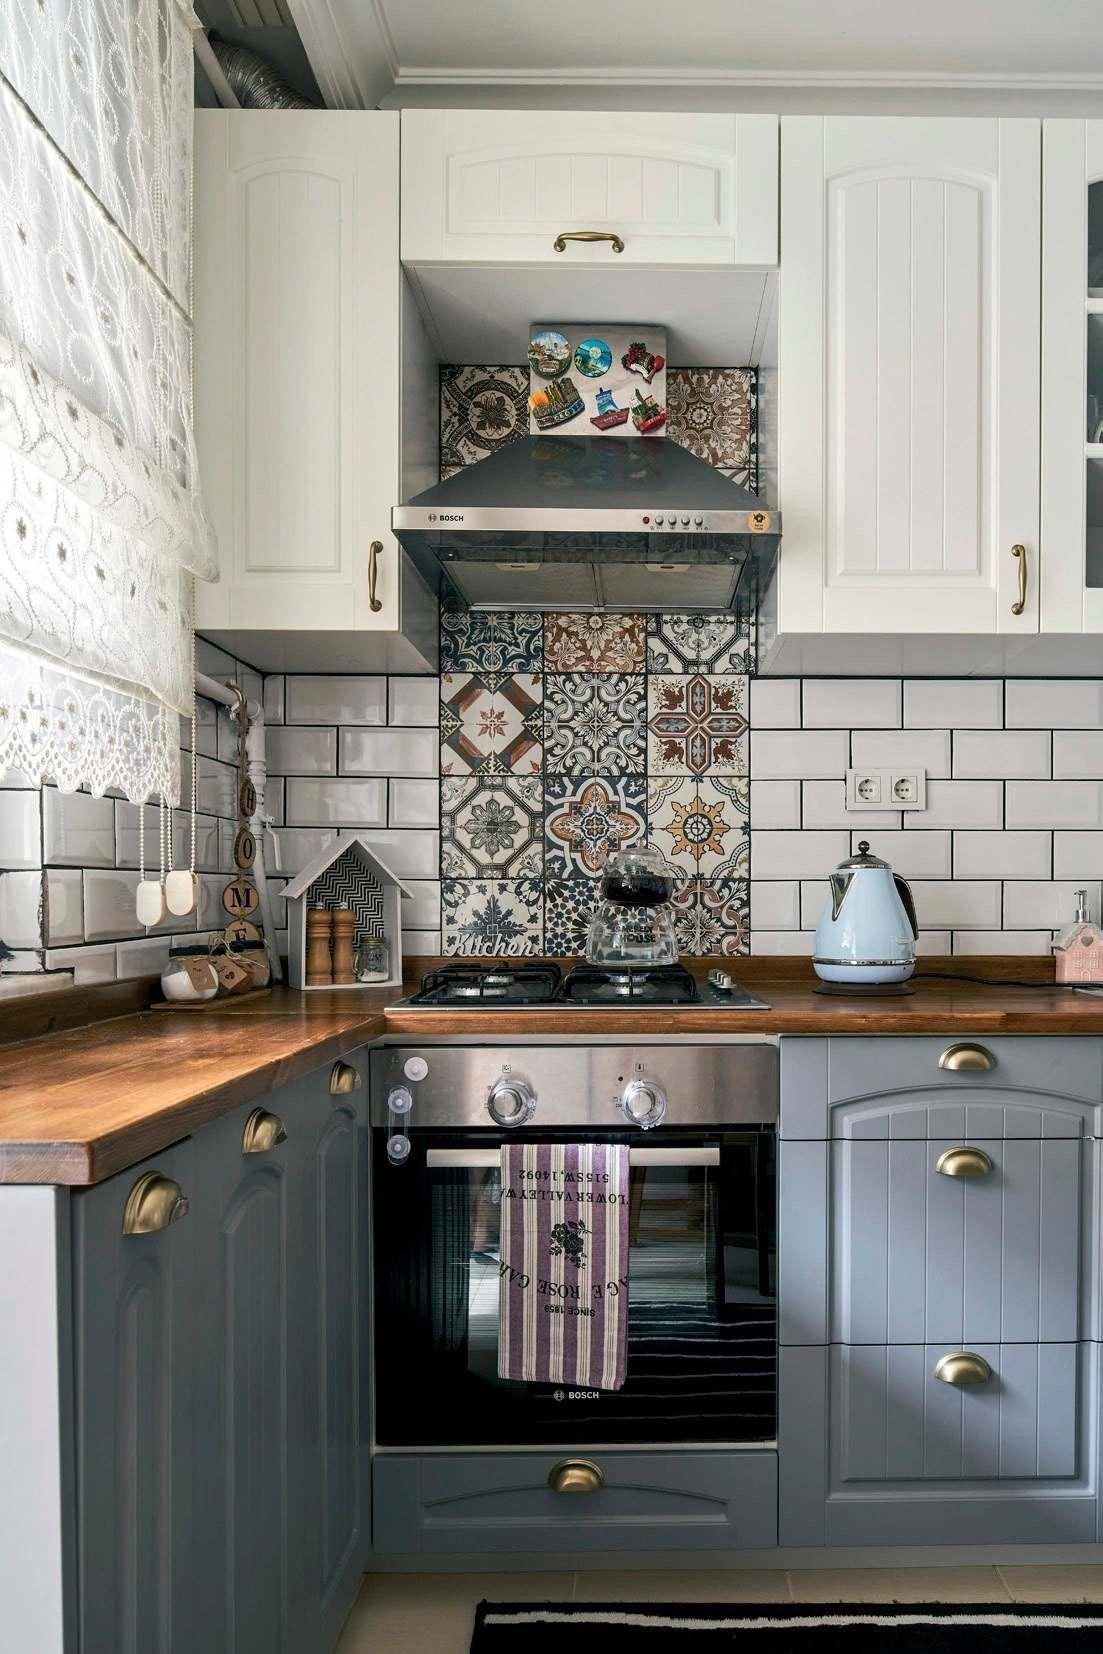 Interior Design Ideas For Kitchen Red And Teal Kitchen Decor Small Kitchen Wall Kitchen Cabinets And Backsplash Farmhouse Style Kitchen Home Decor Kitchen